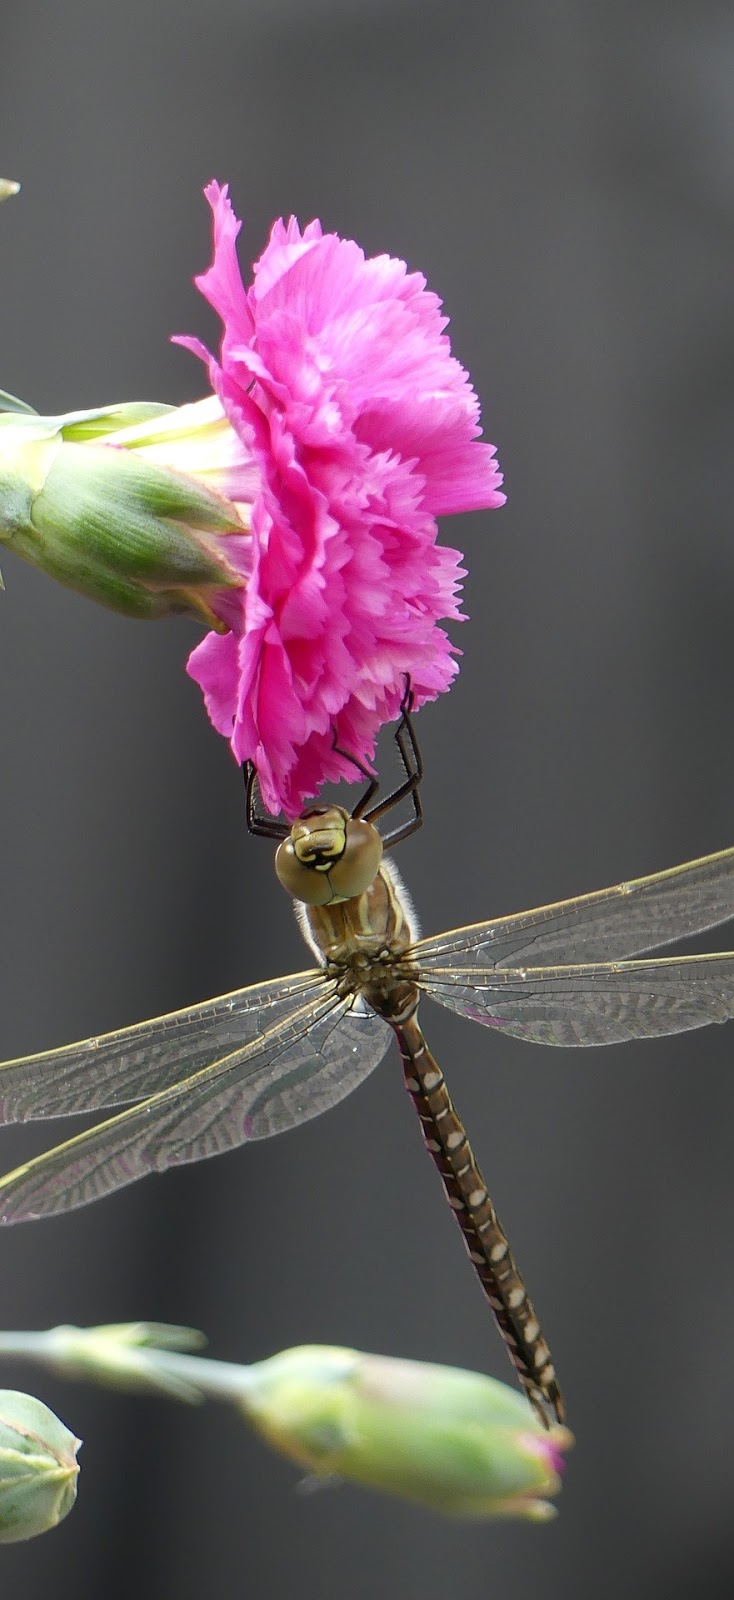 A dragonfly on a red flower.